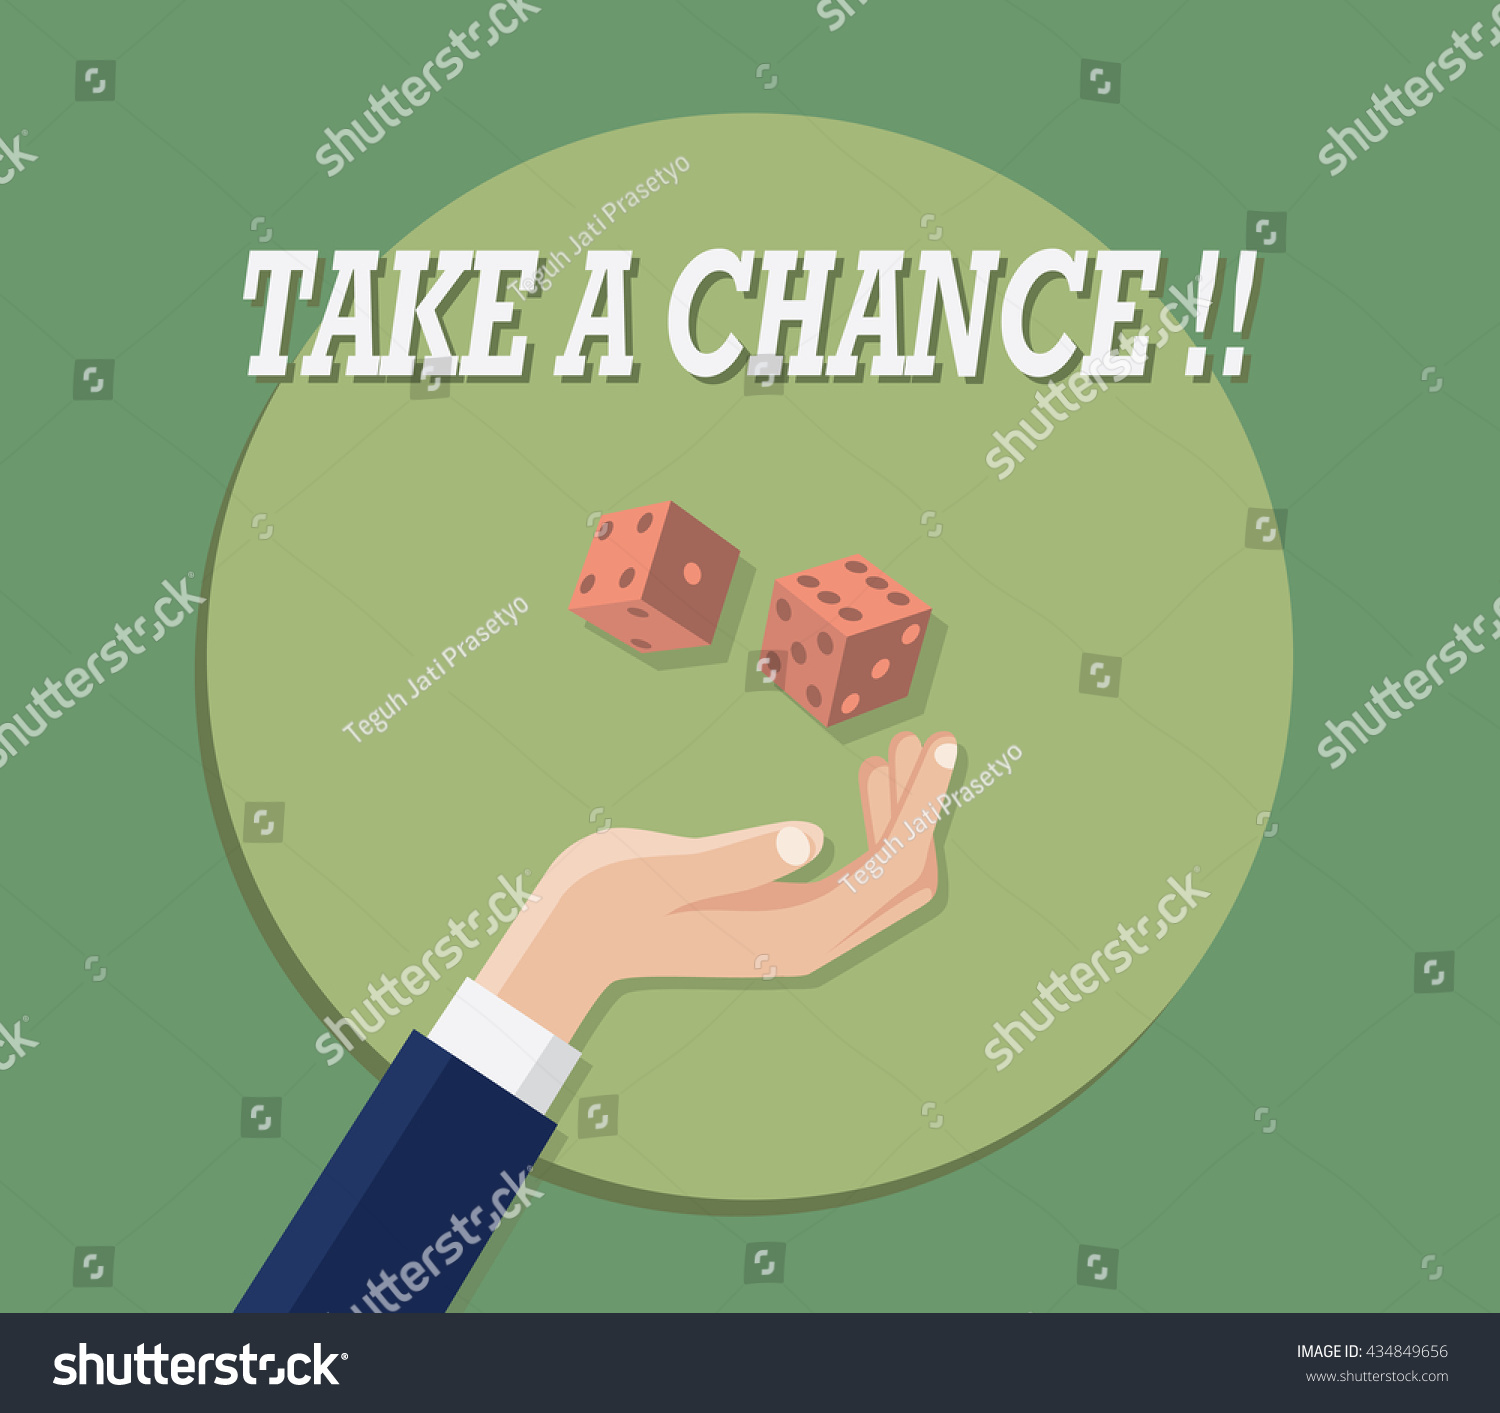 Image result for graphic photos of take a chance